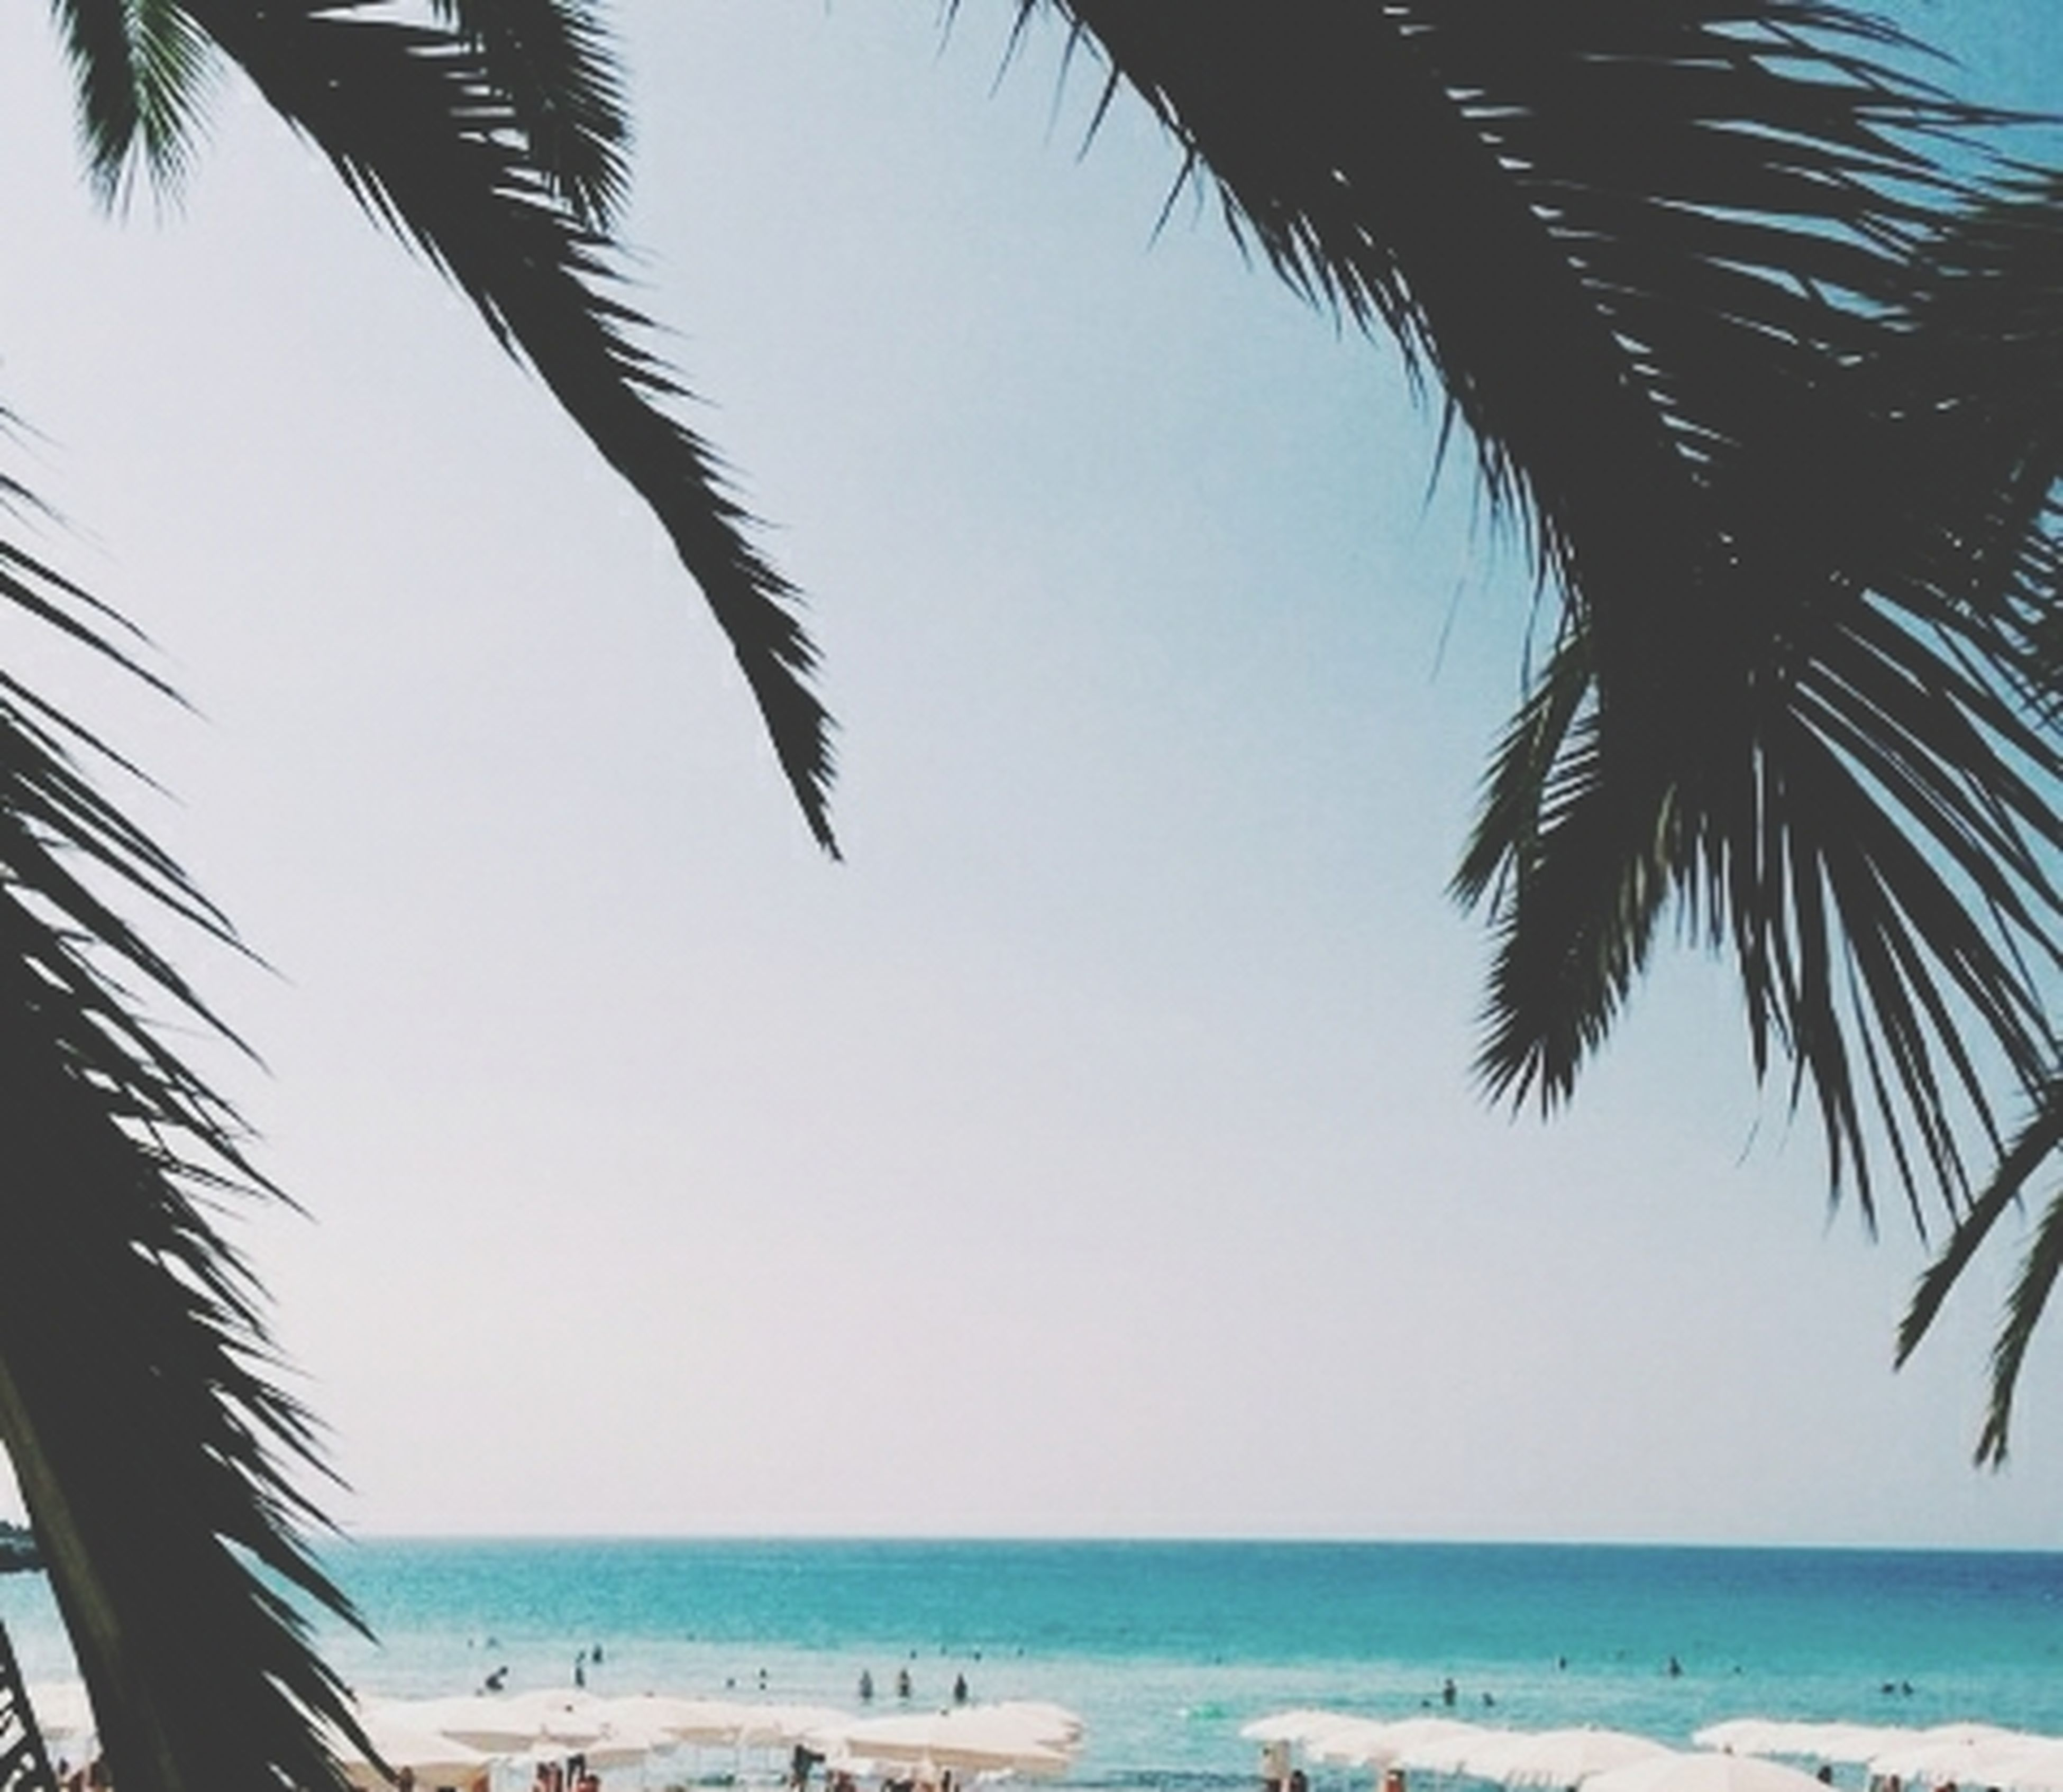 sea, palm tree, beach, horizon over water, water, shore, tranquility, tree, tranquil scene, scenics, beauty in nature, sand, nature, sky, tropical climate, blue, clear sky, vacations, idyllic, coconut palm tree